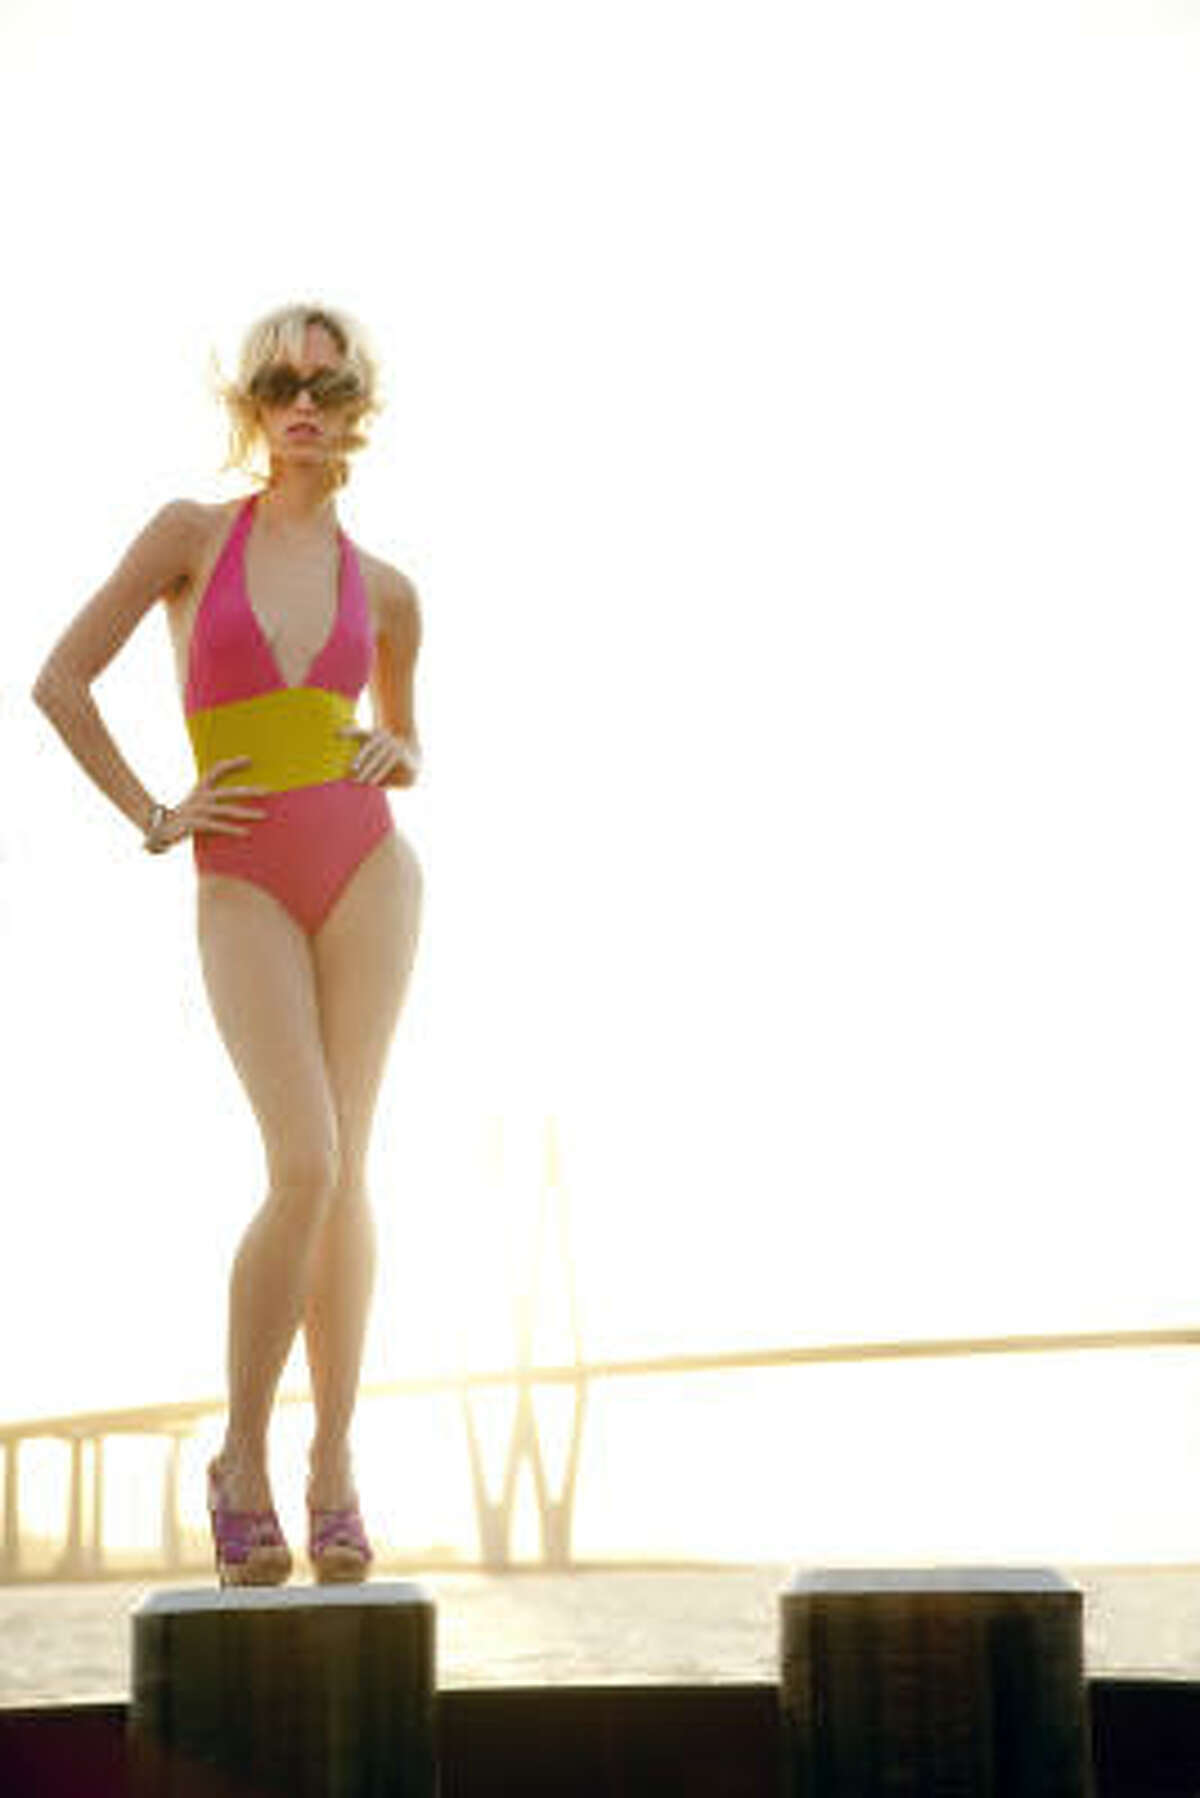 Leopoldine Golunski of the Neal Hamil Agency wears an Eres one-piece, $568, La Mode Swimwear. Lanvin floral platforms, $950, and Chanel sunglasses, $270, Neiman Marcus. Styling by Dawn Bell. Hair and makeup by Tree Vaello, Page Parkes Models.